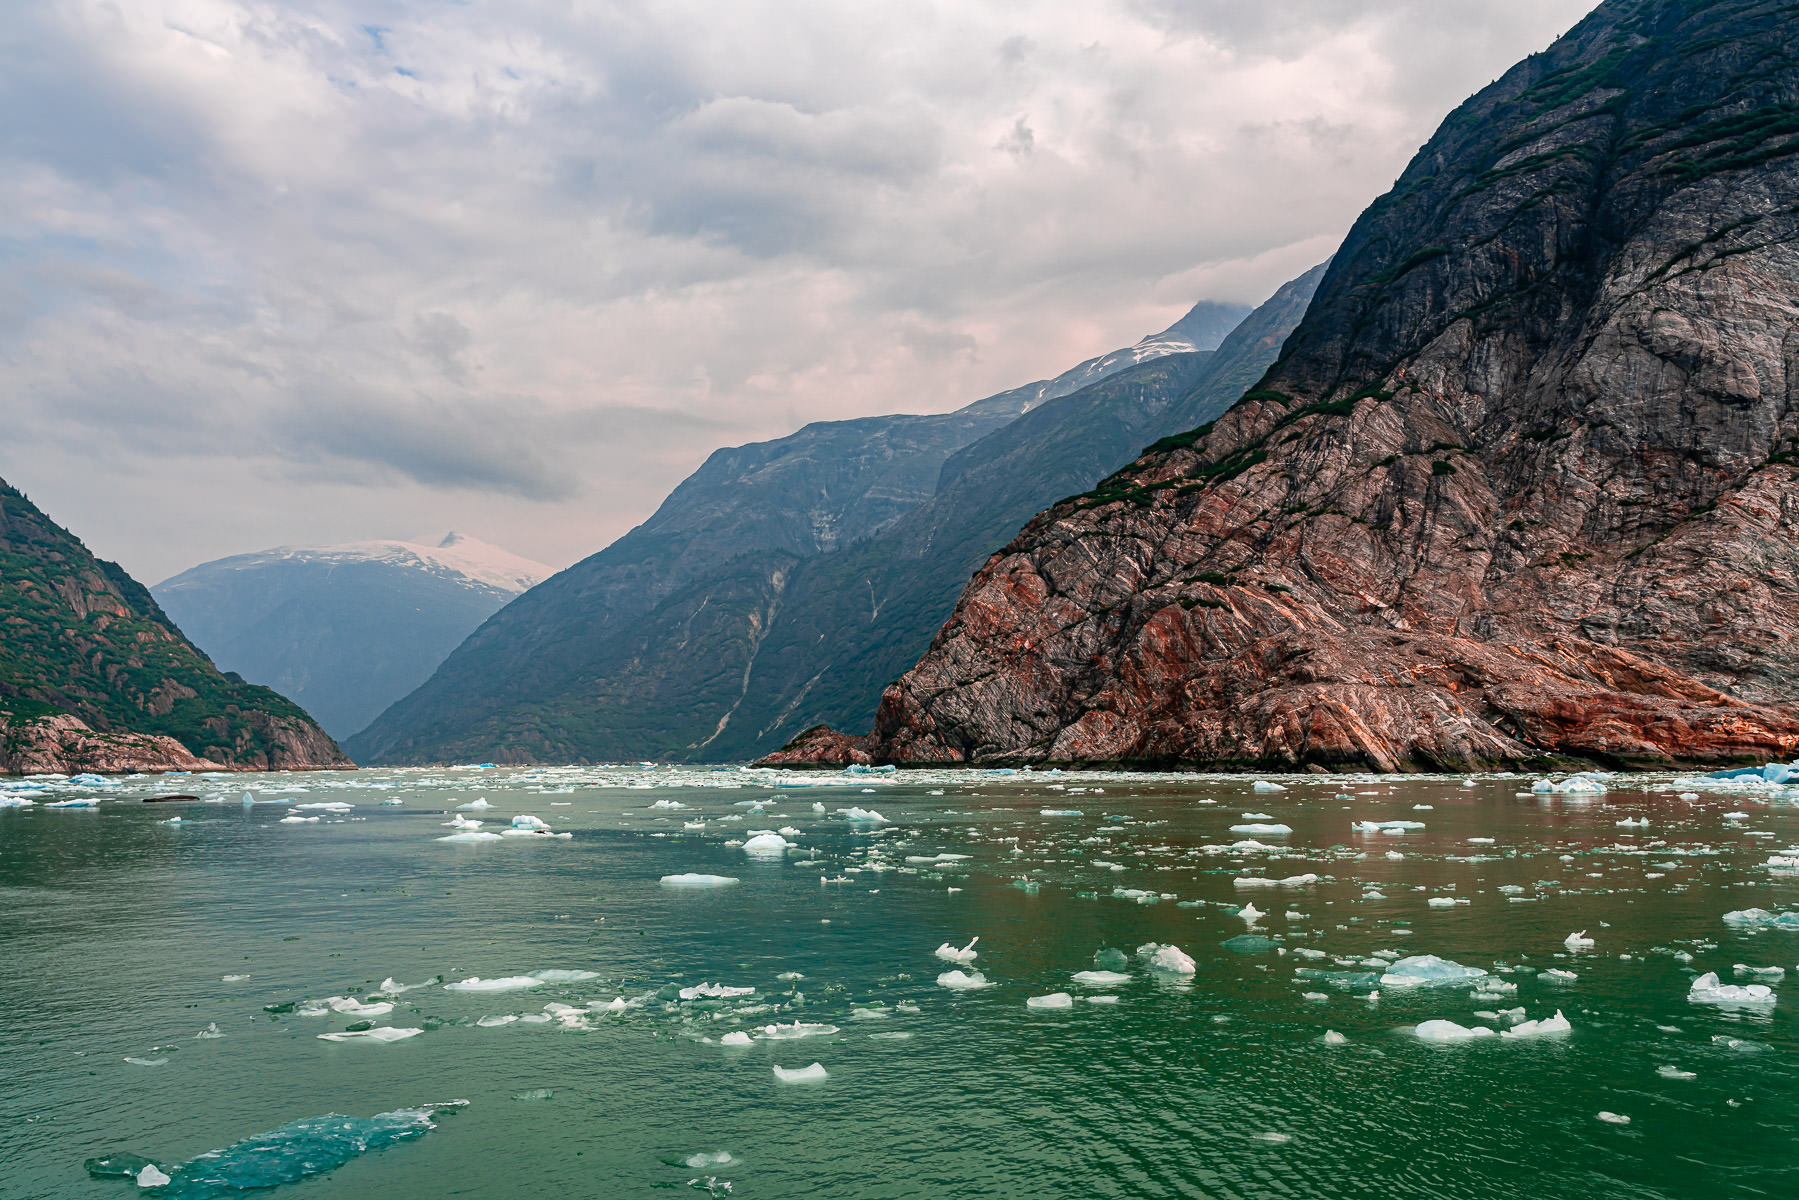 Ice floats among the rocky walls of Alaska's Tracy Arm.